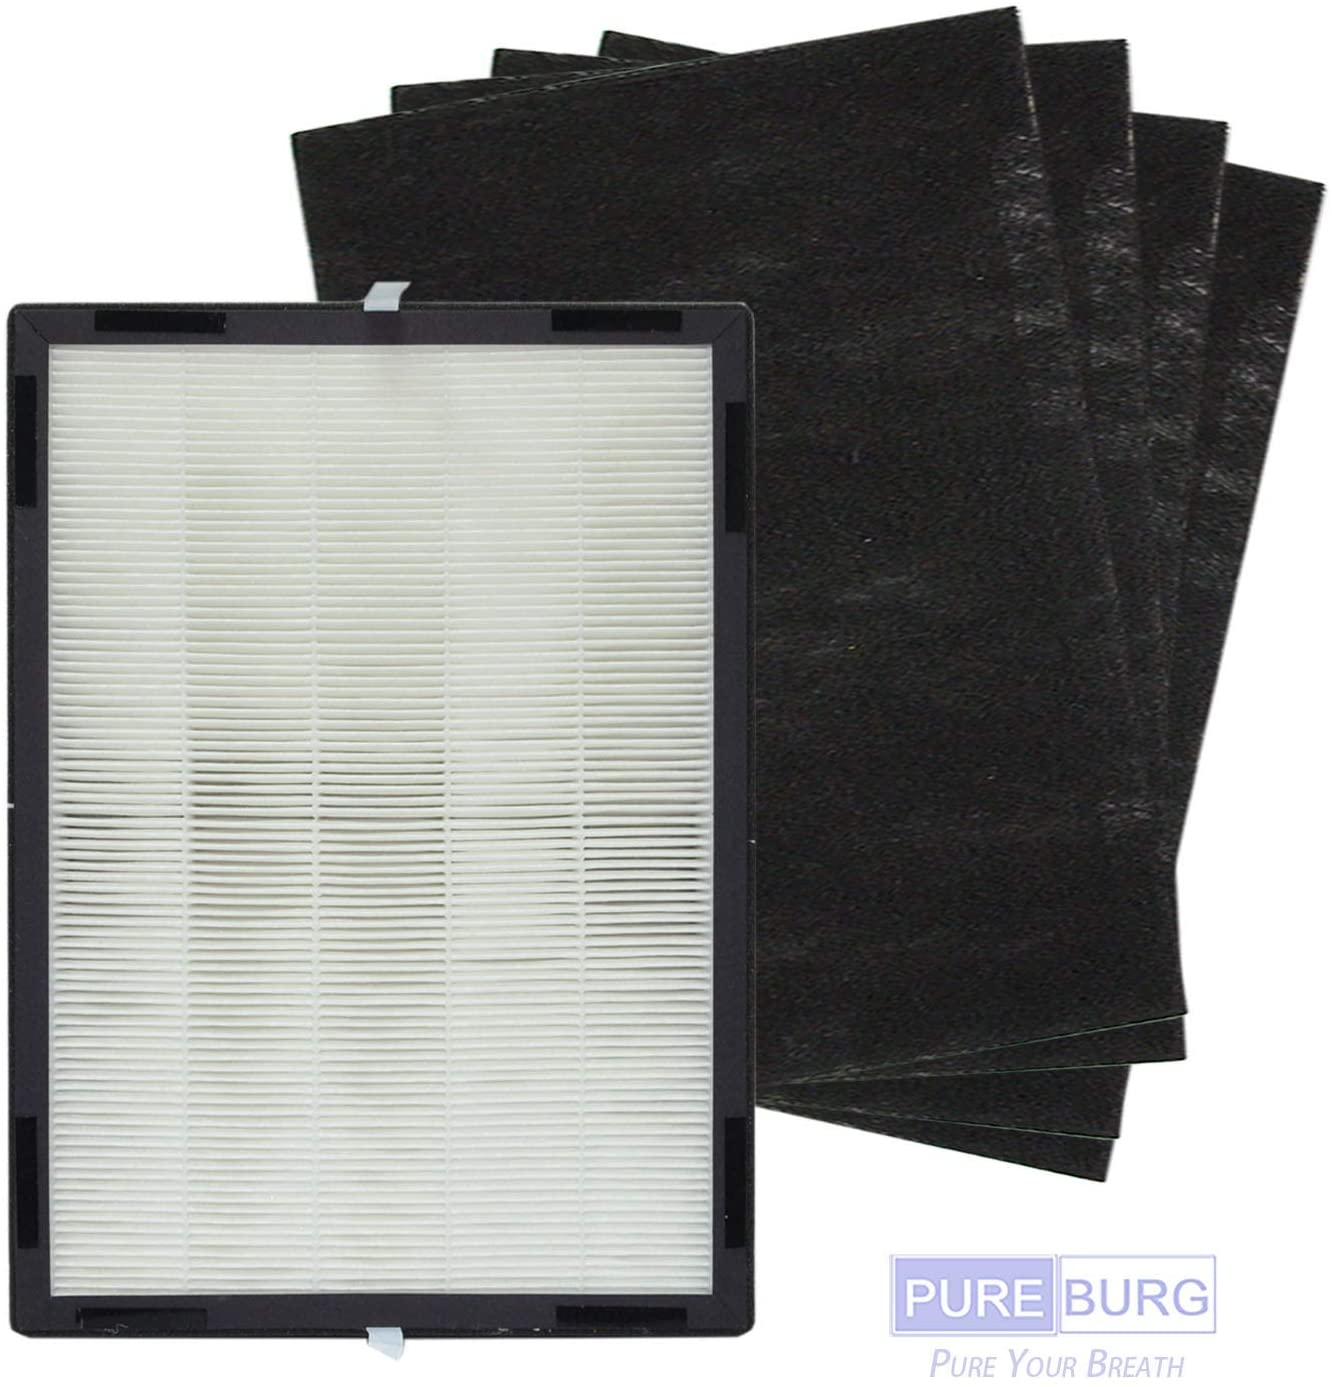 PUREBURG Replacement 1 x HEPA Filter and 4 x Carbon Pre-Filters Compatible with Hunter H-HF700-VP H-PF700 Fits Hunter HP700 Medium Console Air Purifiers